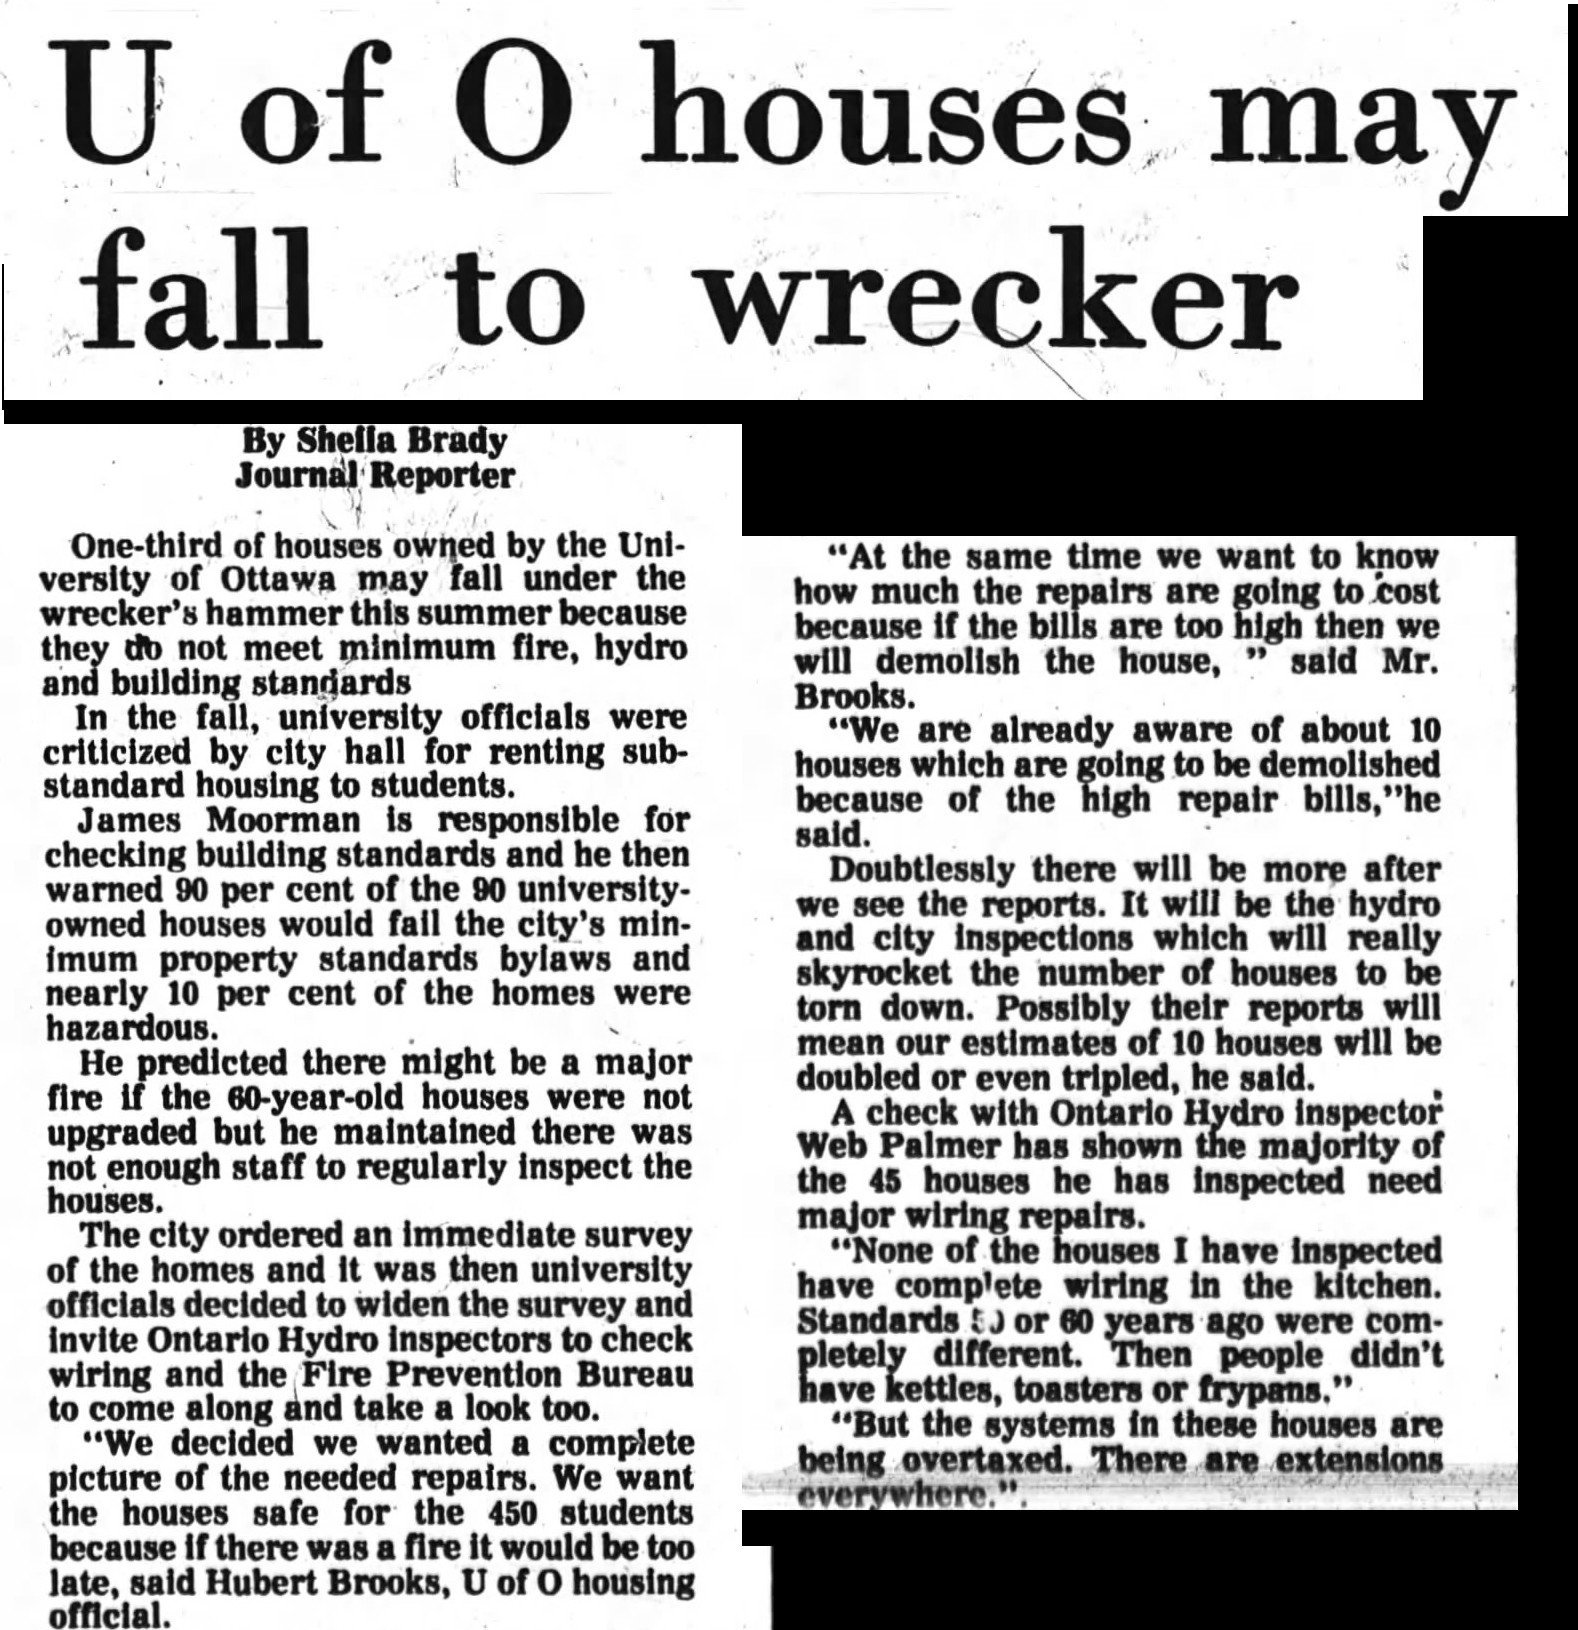 Image: Extract from Ottawa Journal 7 Feb 1977 article on University of Ottawa Housing Issues